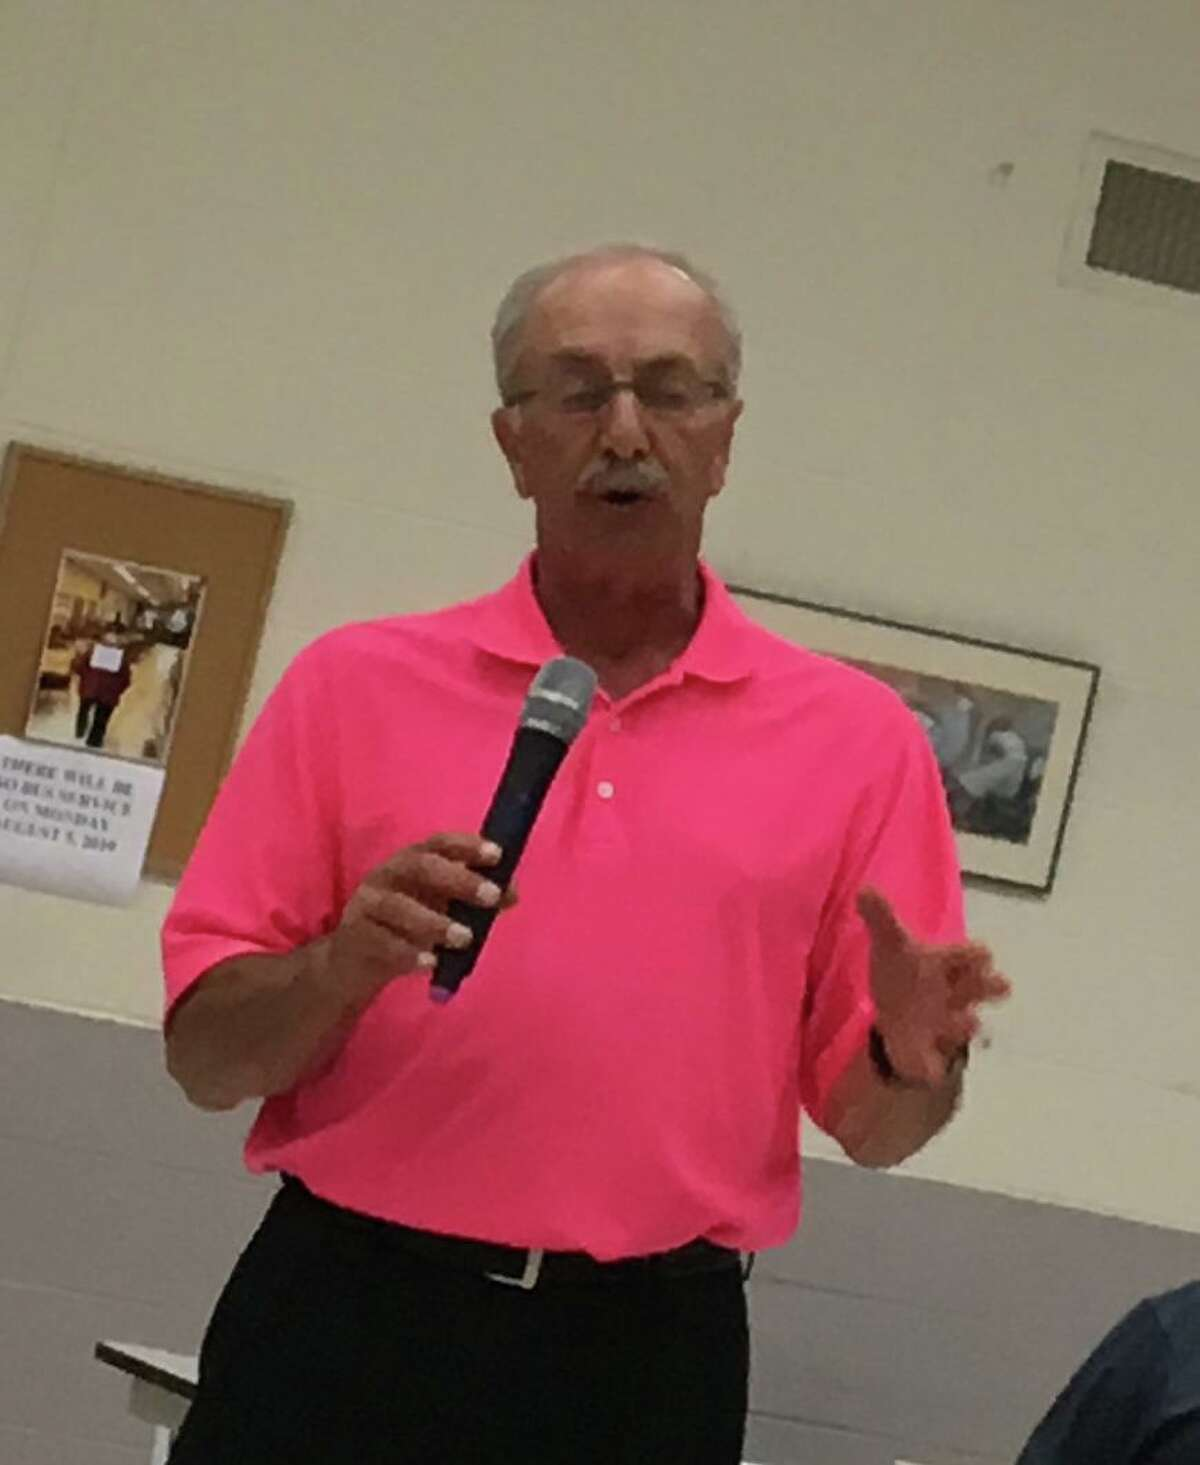 Former East Haven Director of Administration and Management Sal Brancati, who was let go by the town on Tuesday, Jan. 14, 2020, at a recent meeting.